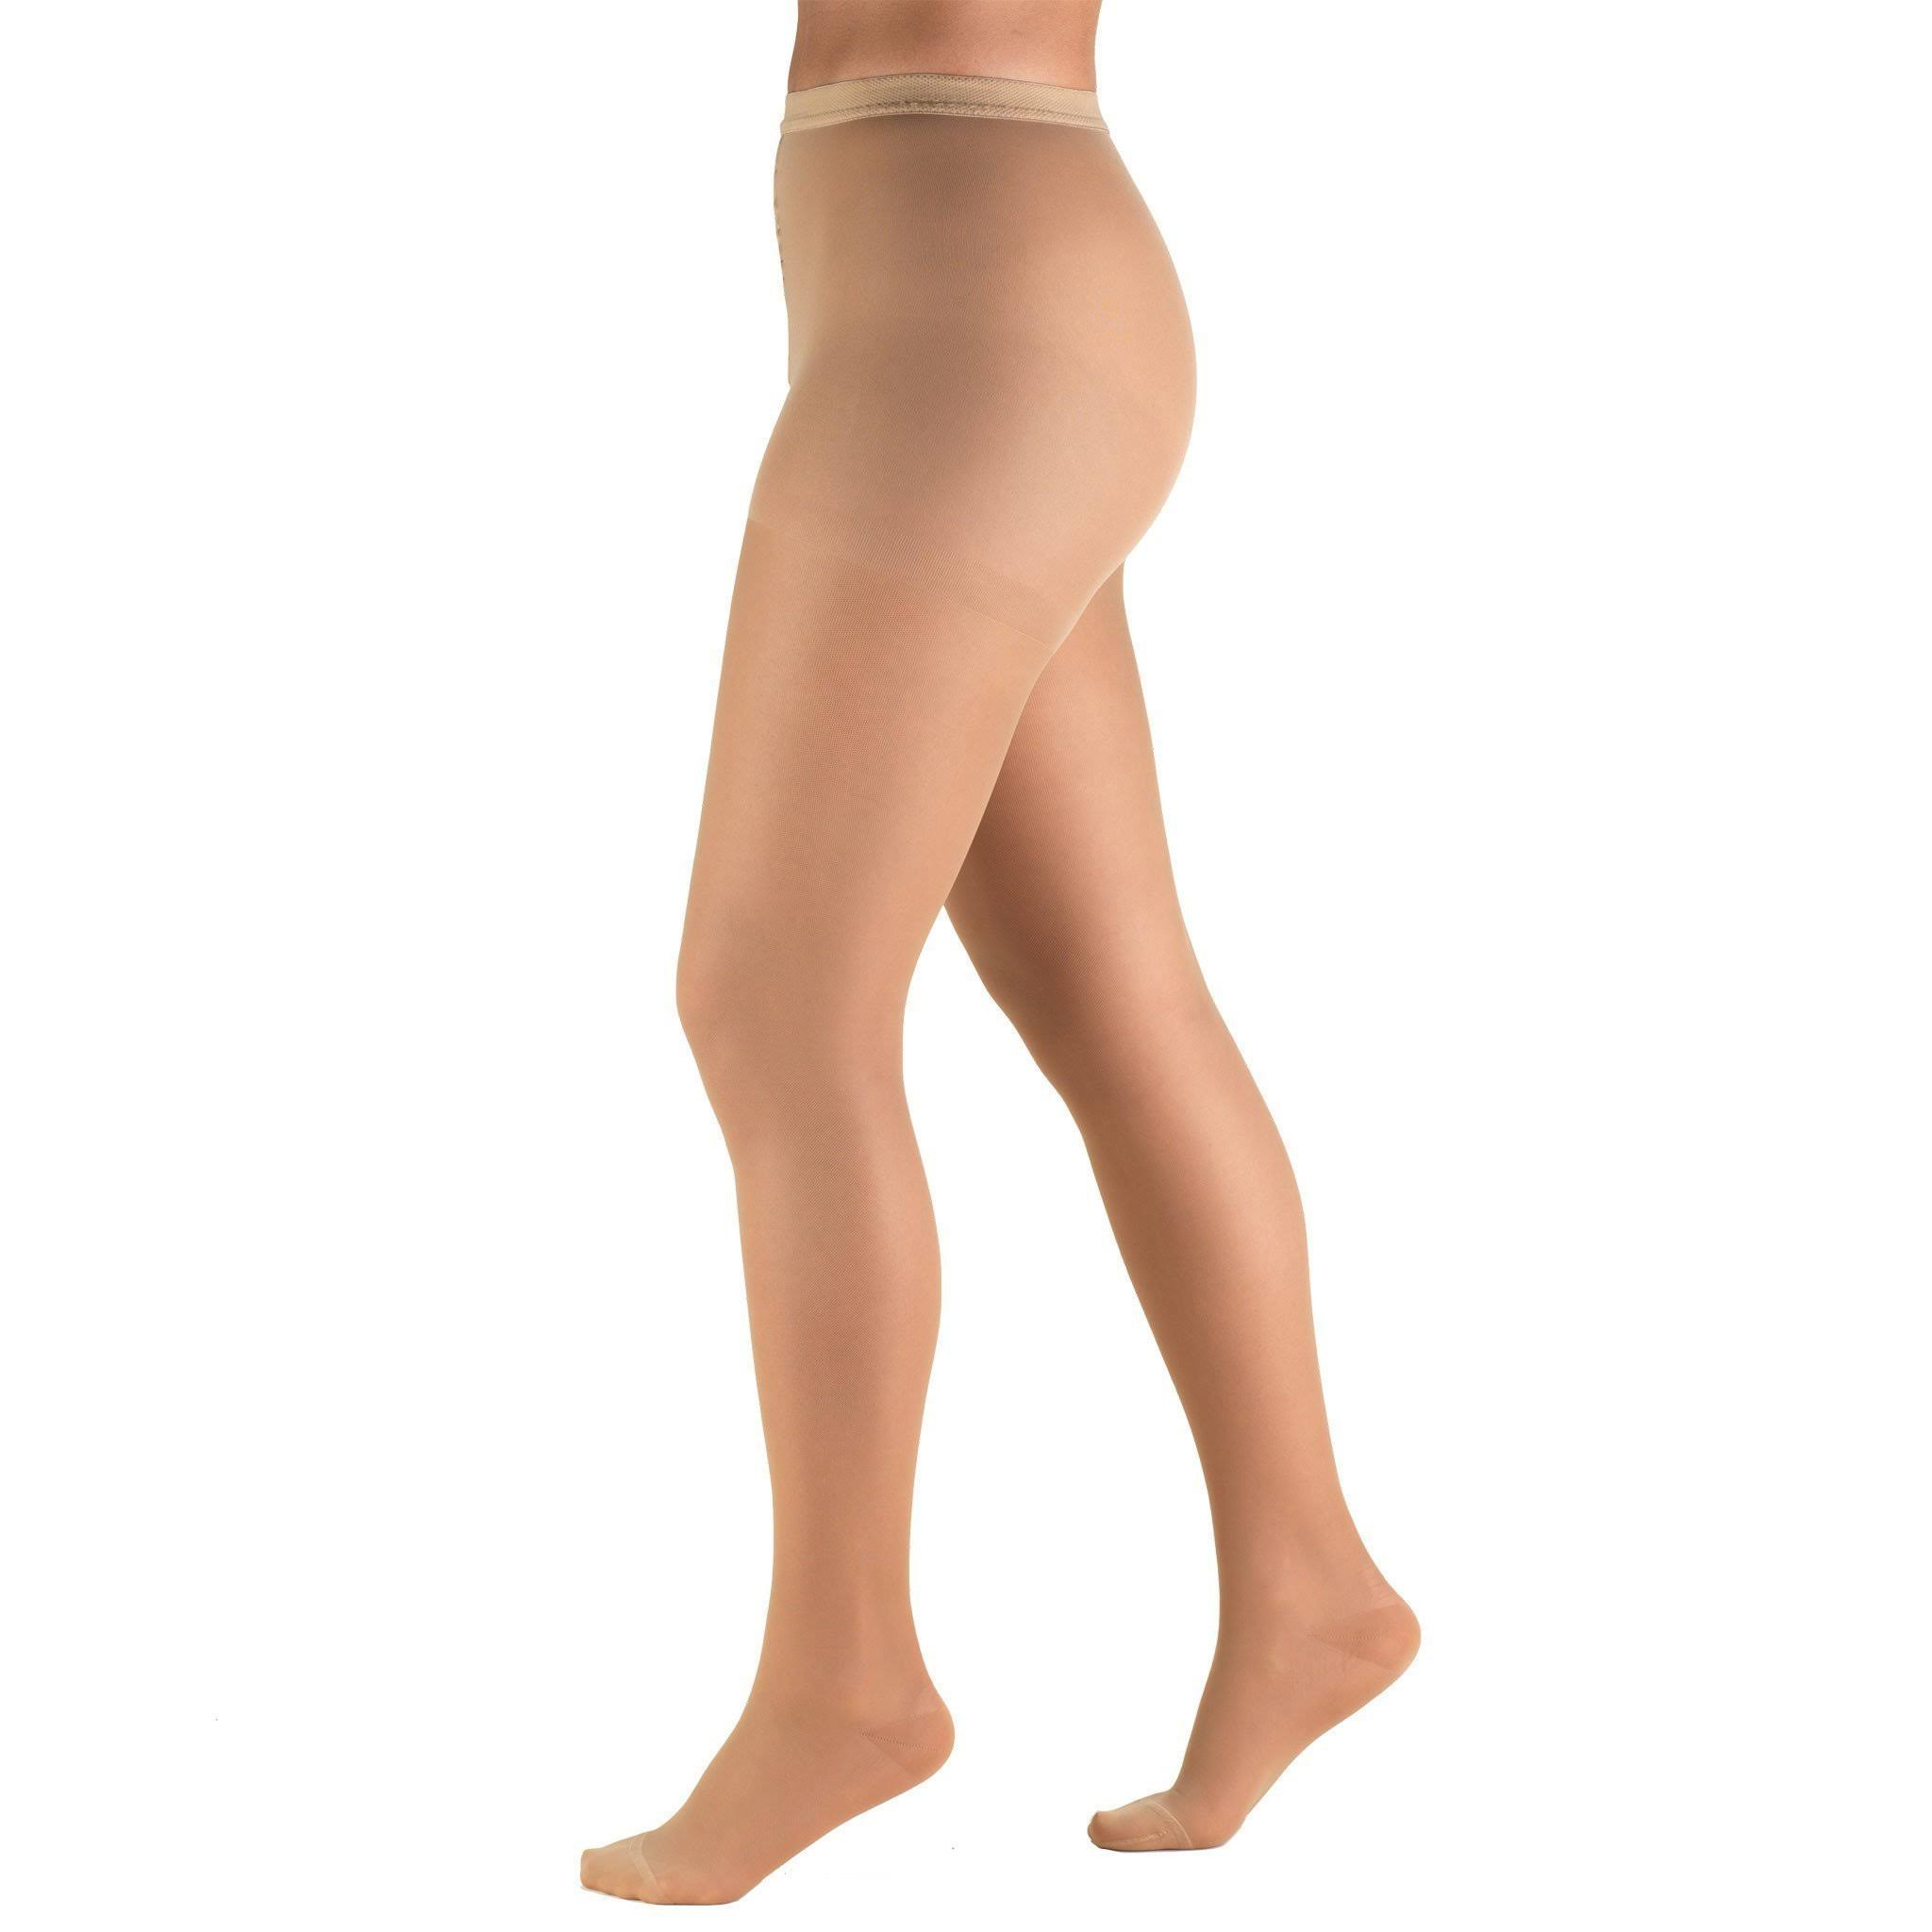 Truform Women's 15-20 mmHg Sheer Compression Pantyhose - Beige, Medium